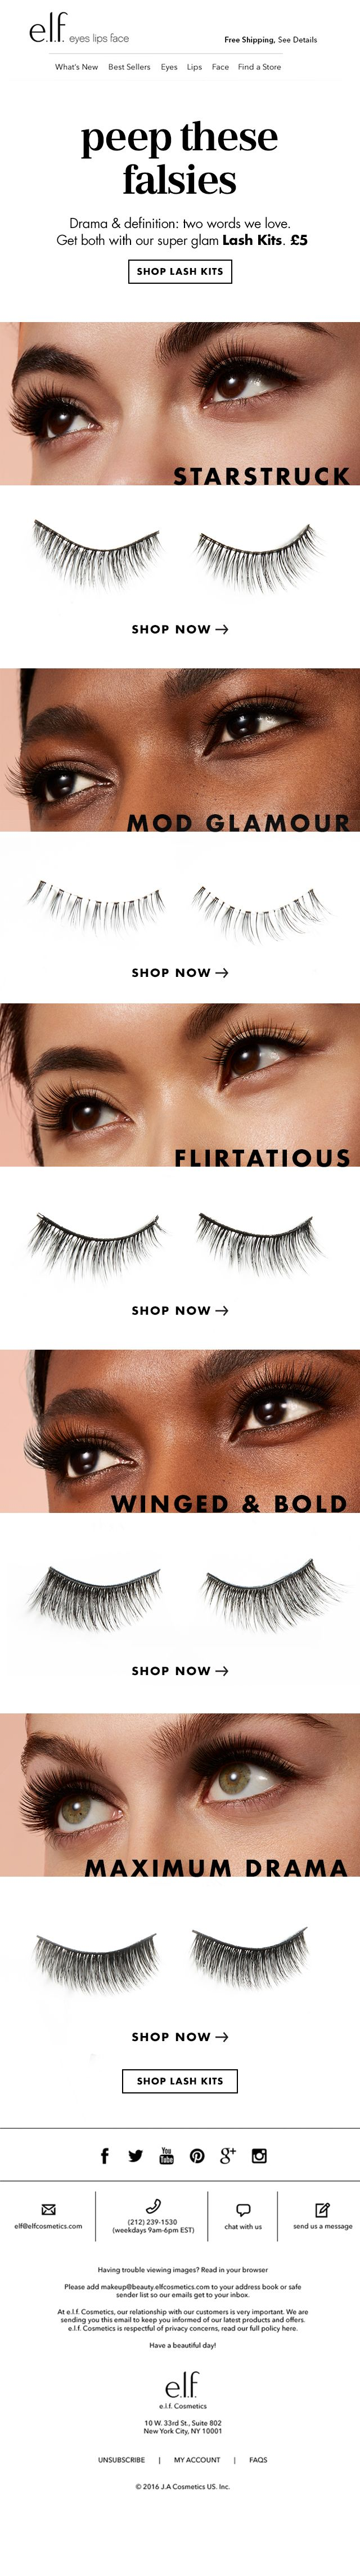 Peep these falsies.  CLIENT: e.l.f. Cosmetics UK Built by: Mark Nayve | SellUP